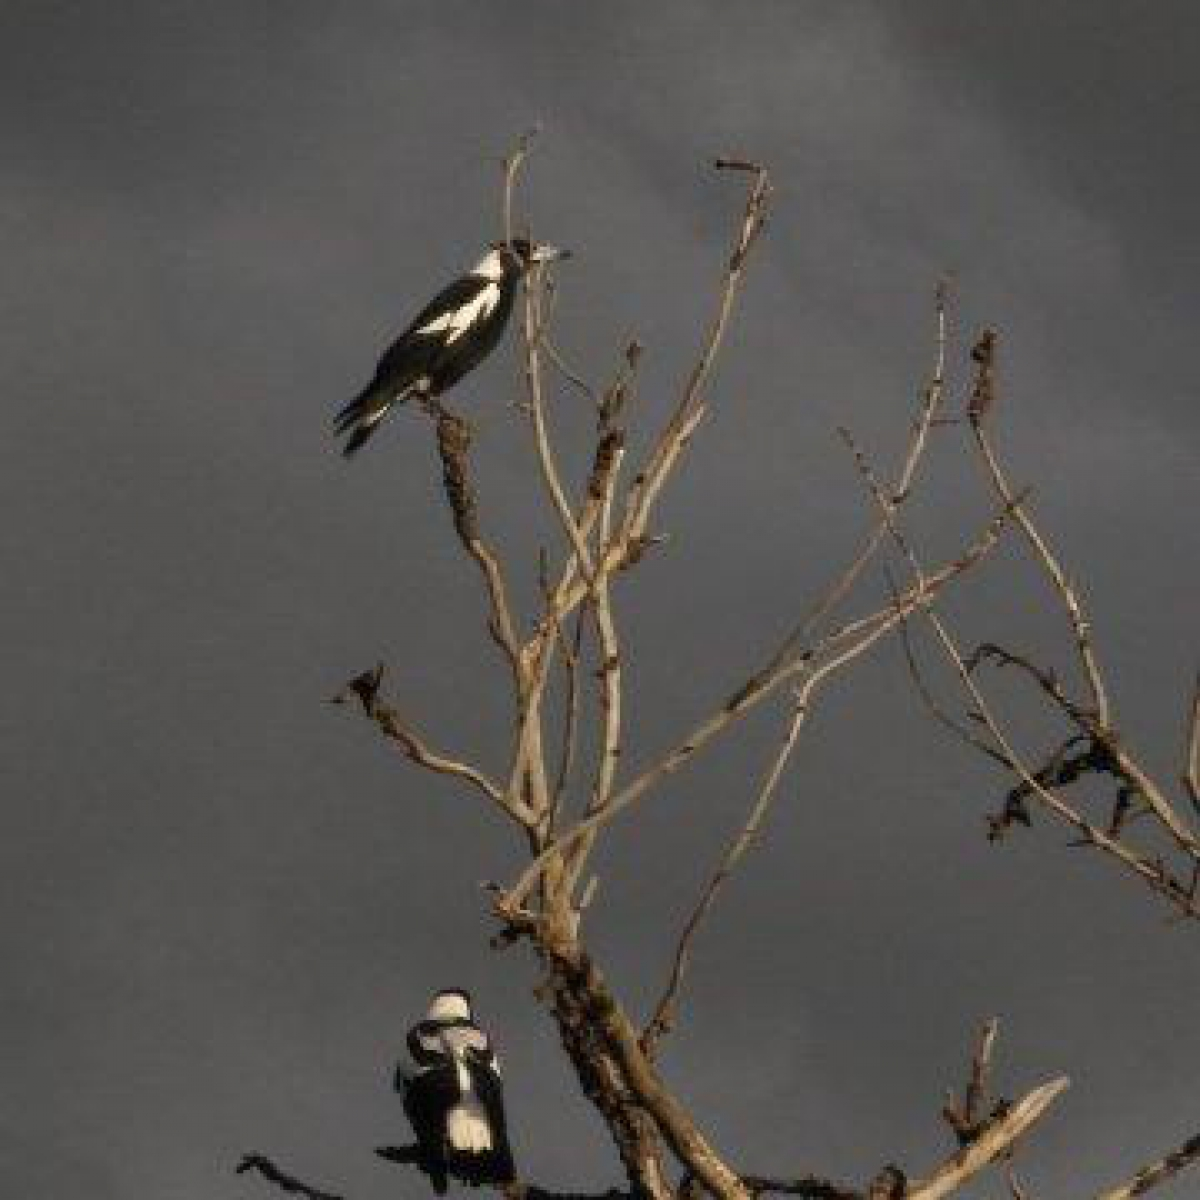 Magpies awaiting the storm